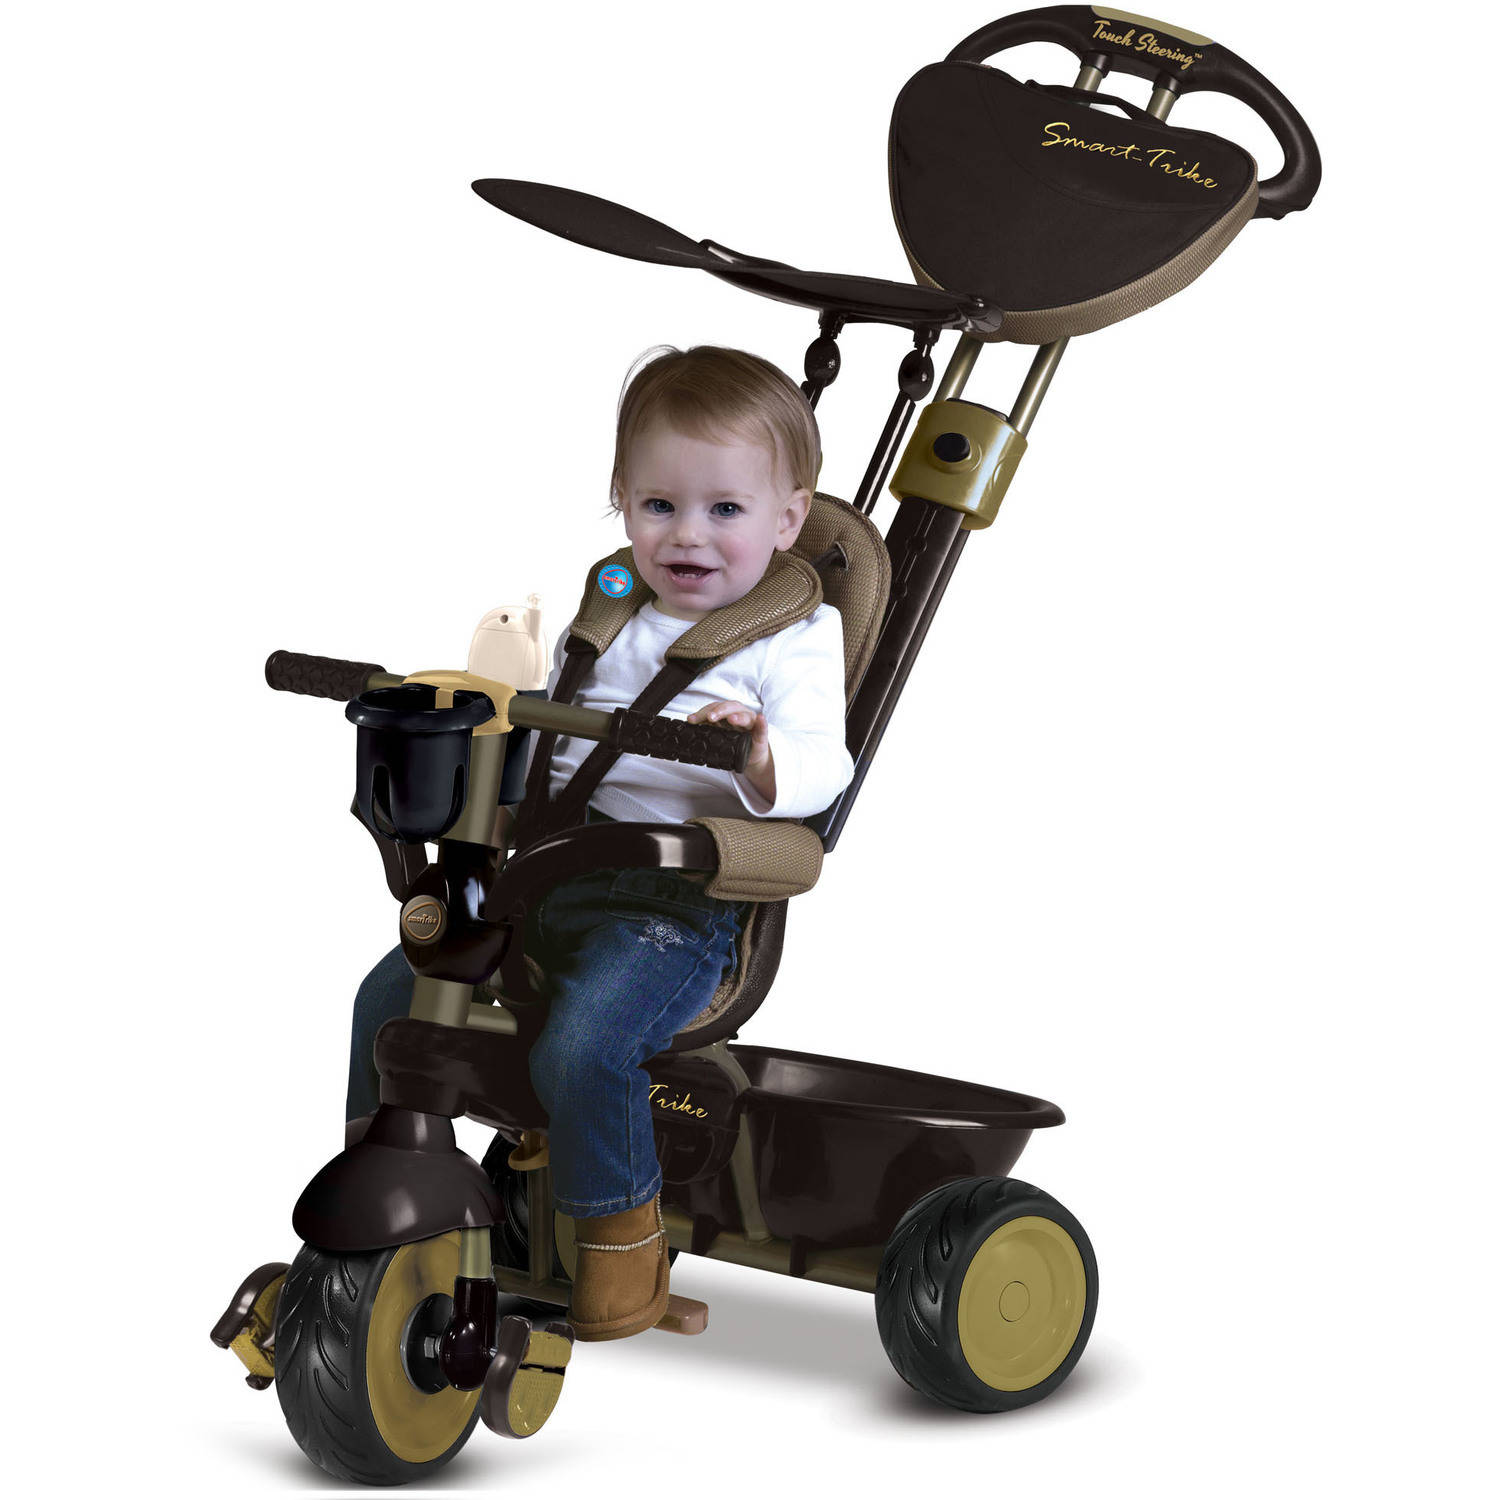 8b77268c990 smarTrike Dream 4-in-1 Tricycle, Gold - Walmart.com